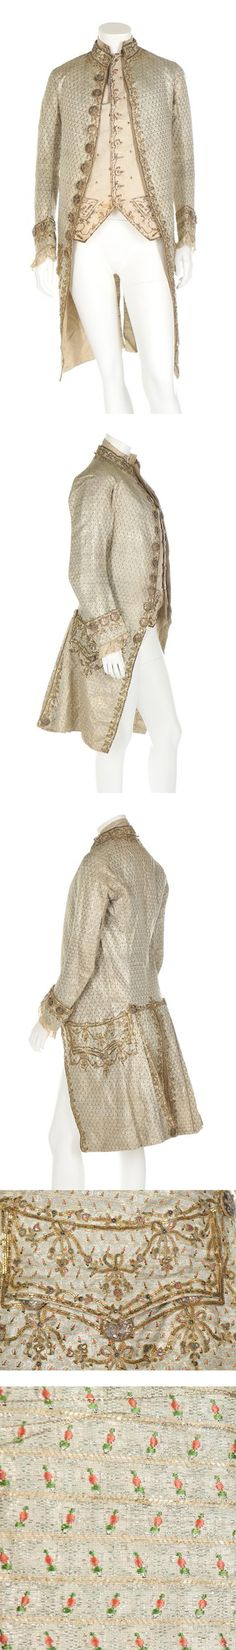 Frockcoat and wasitcoat, Italian, c.1780, silver thread embroidery, gold worked buttons, sprigged with roses | Kerry Taylor Auctions